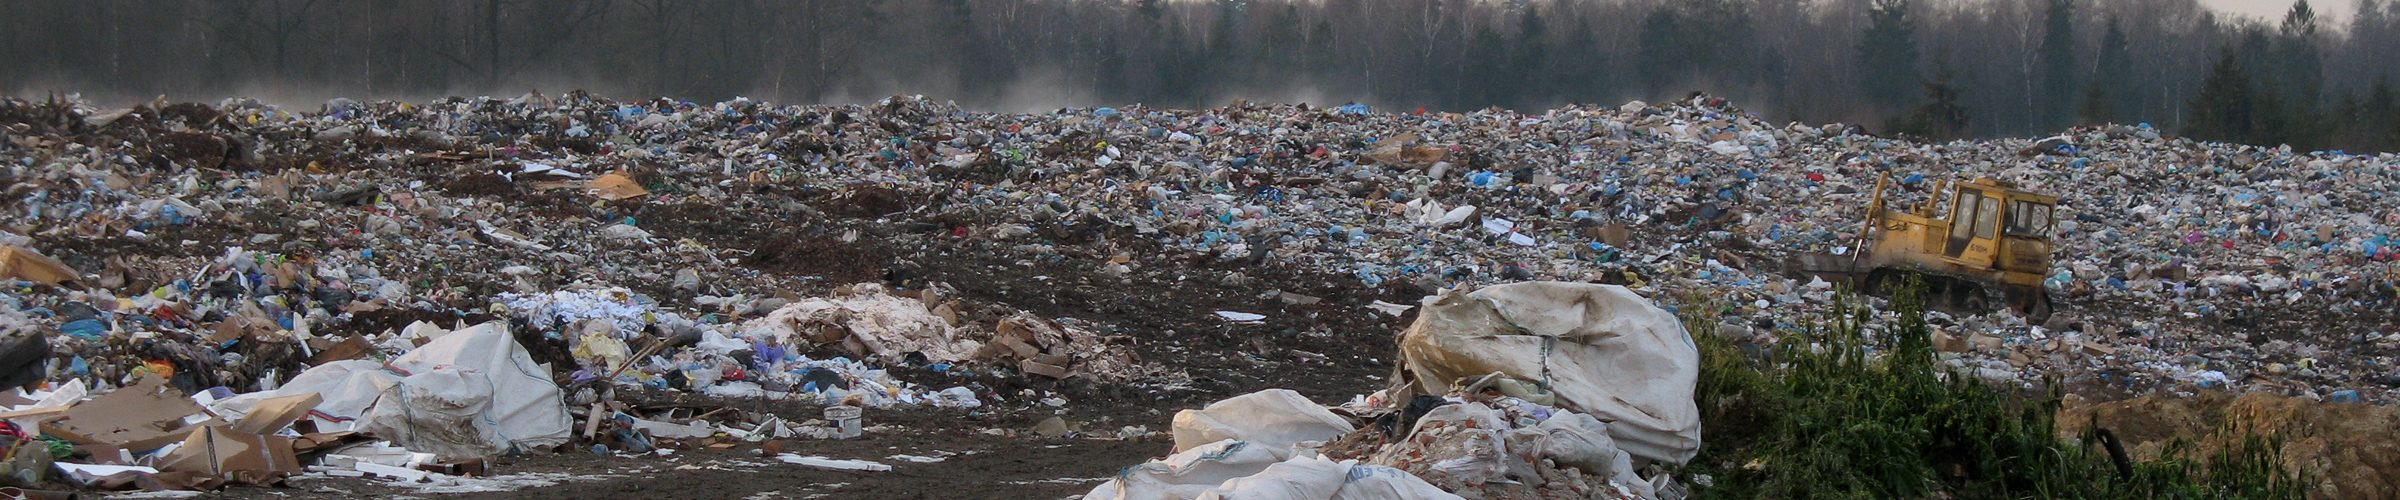 Beginner's Guide To Landfills